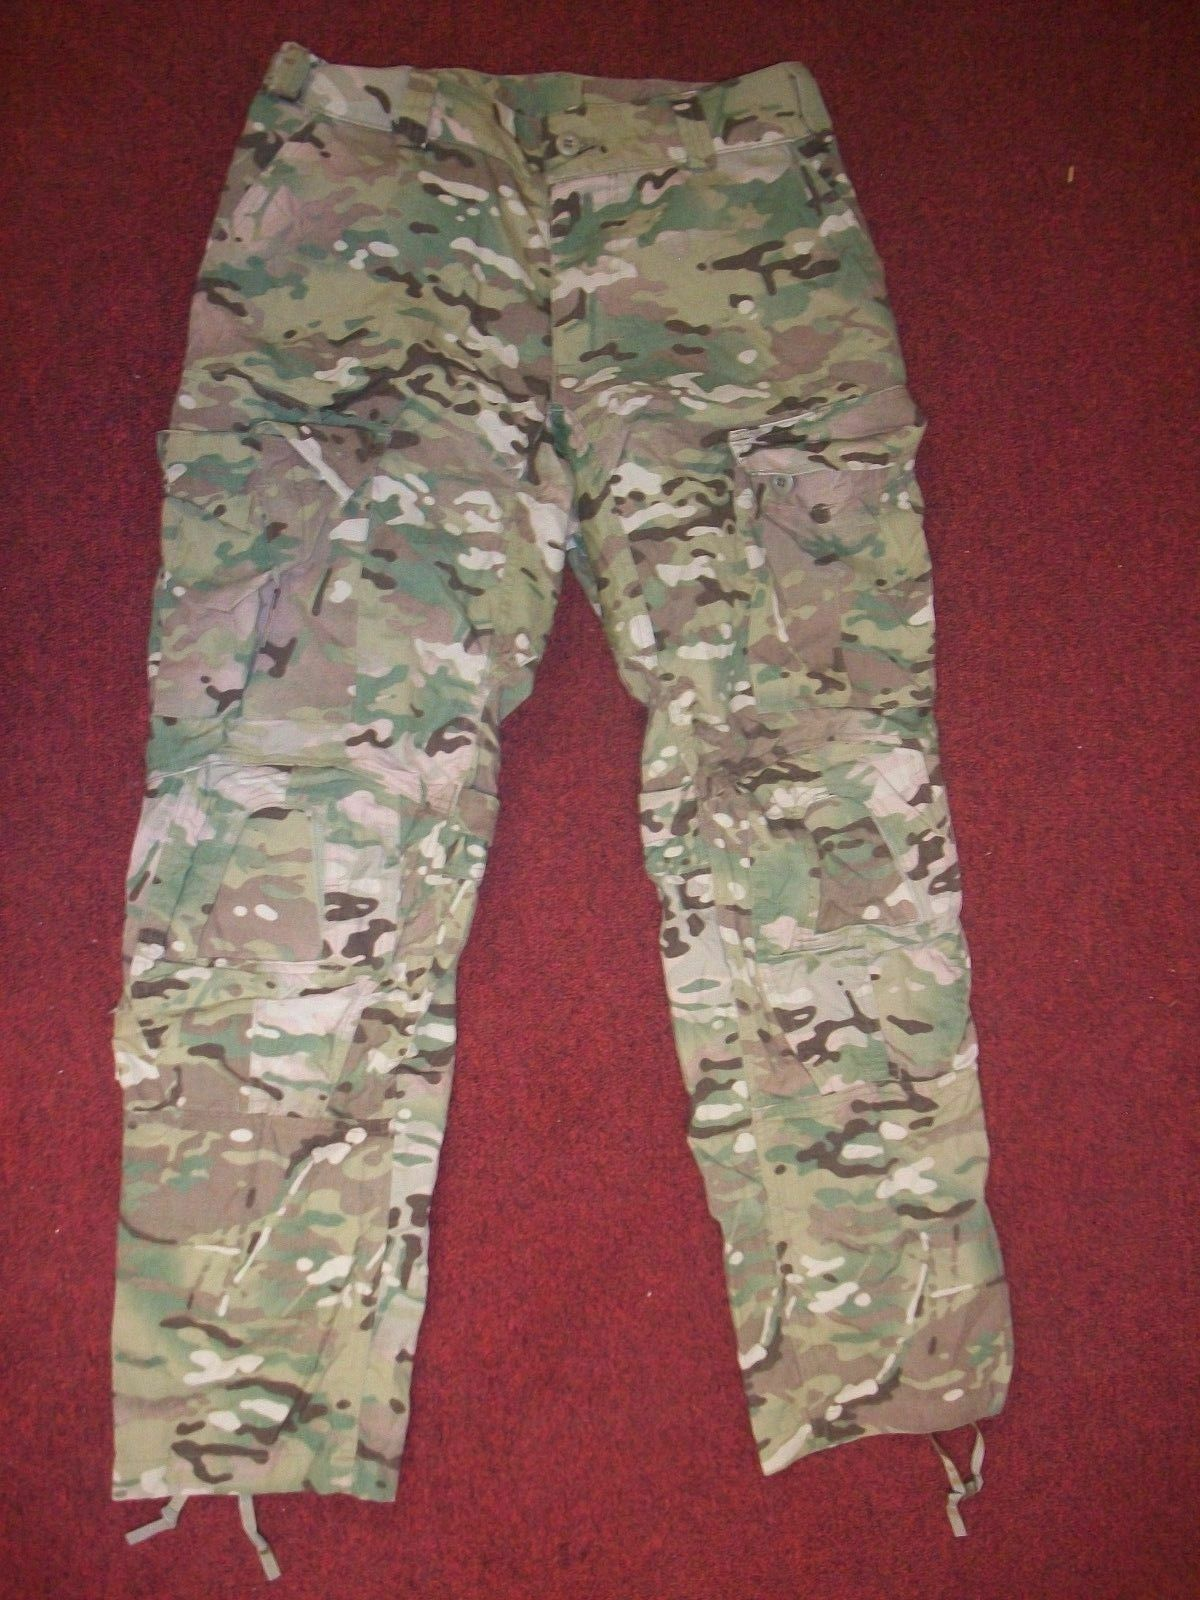 US ARMY MULTI-CAM  ARMY COMBAT PANTS CRYE PRECISION KNEE PADS SLOTS MEDIUM REG